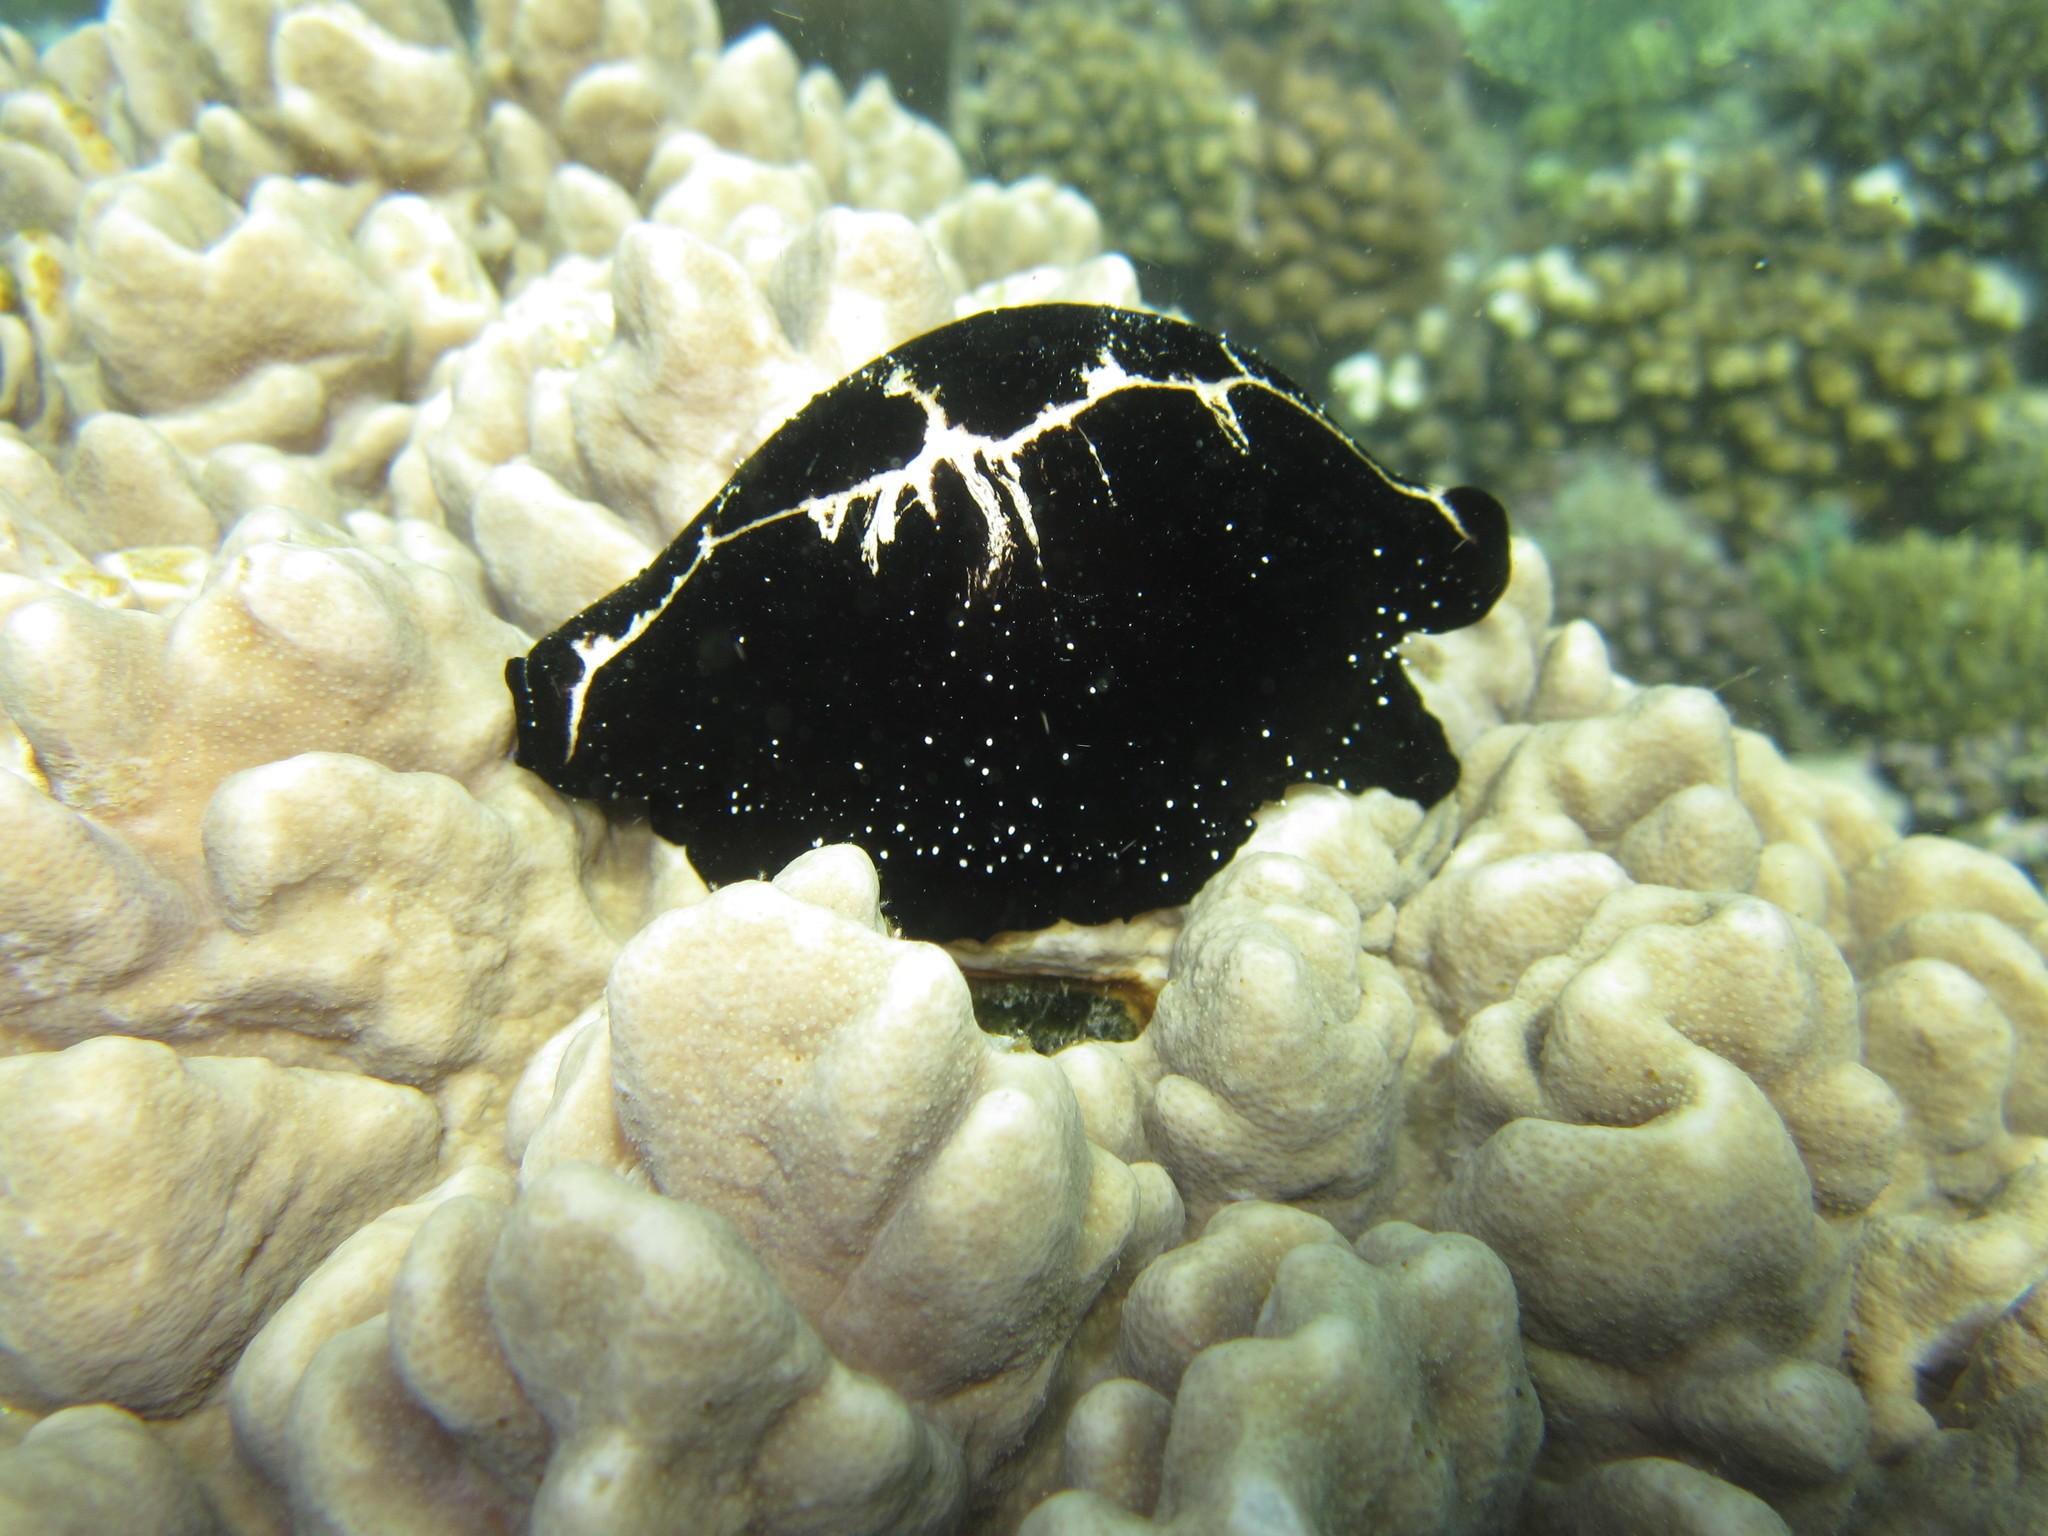 Image of common egg cowrie